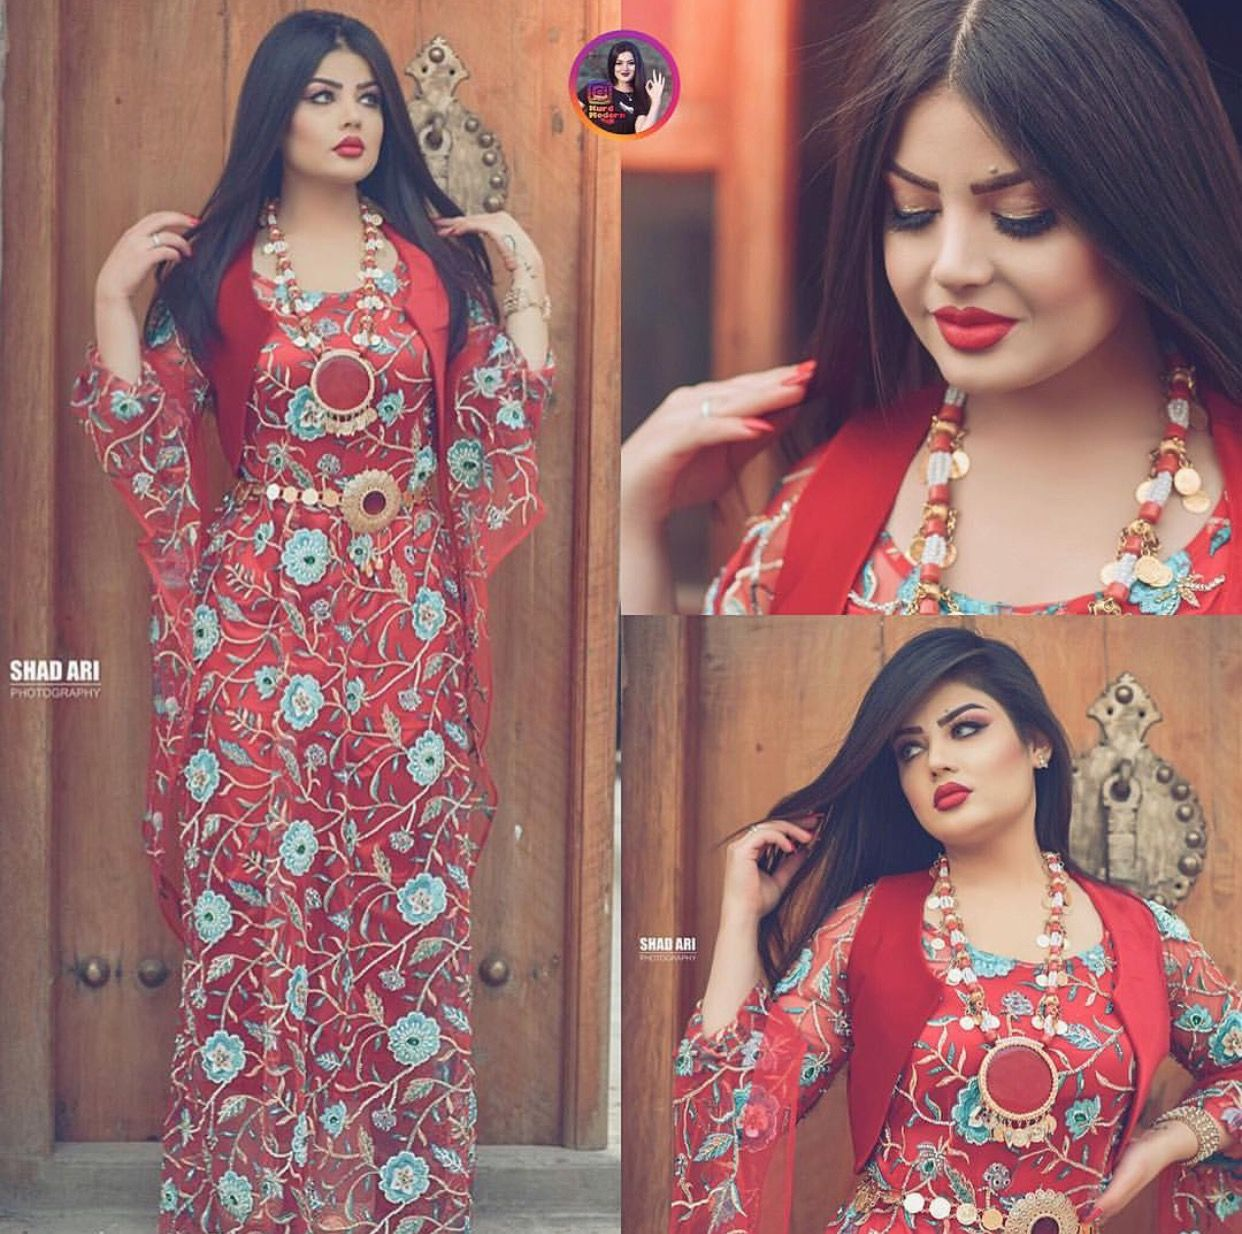 Pin By Elaf On Jle Kurde T Clothes Dress Outfits And